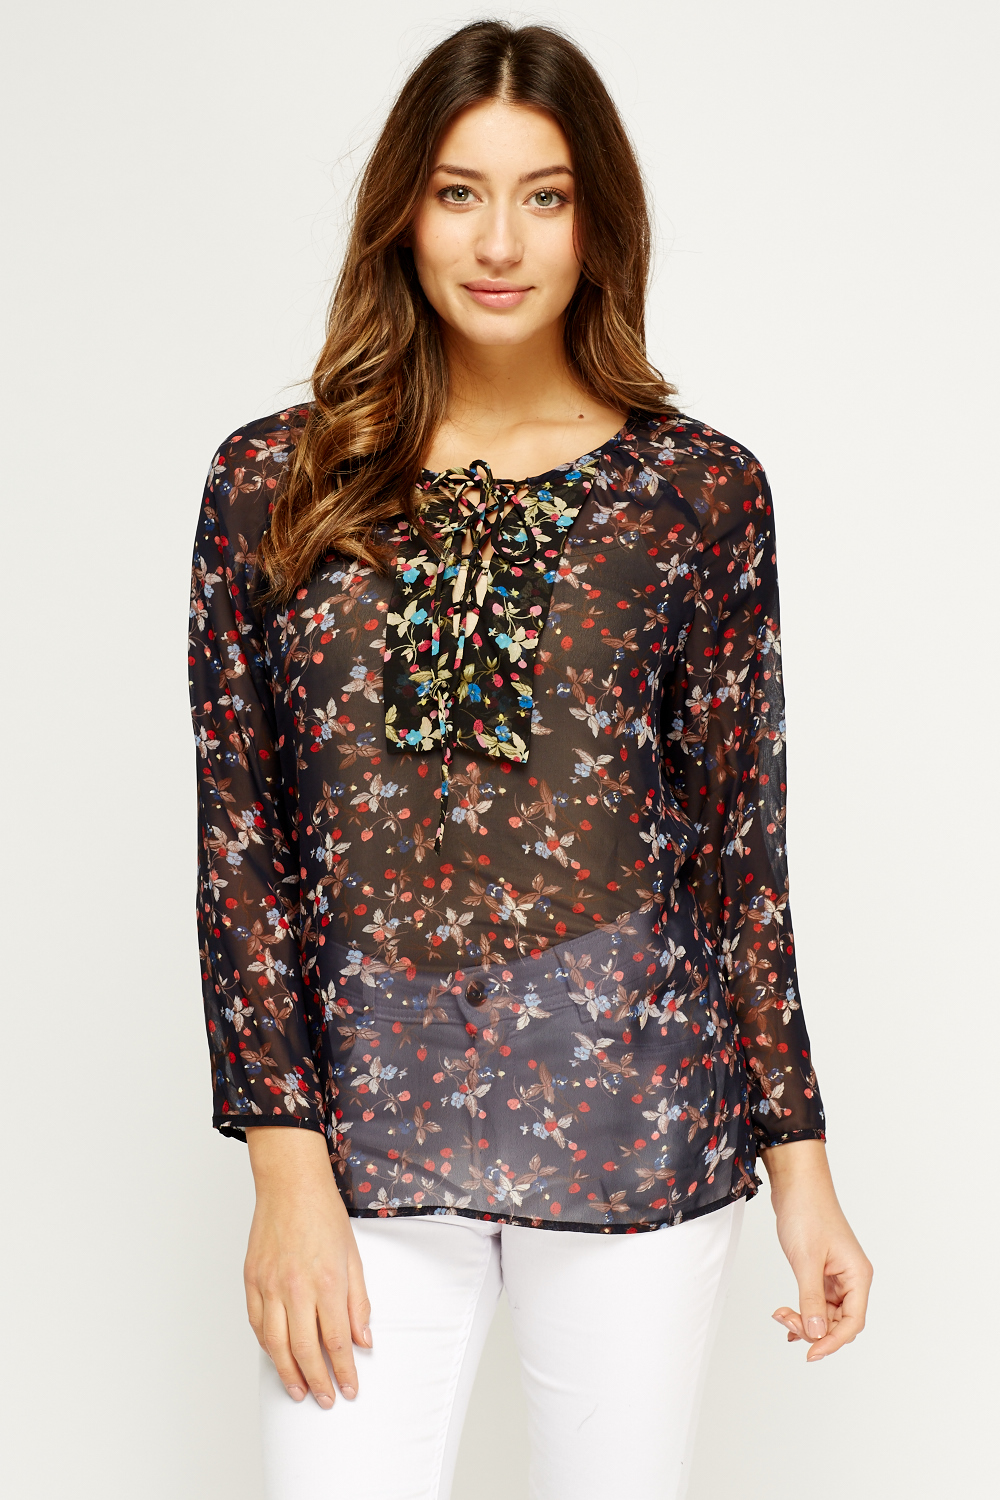 Shop for BLACK 2XL Floral Print Long Sleeve Blouse online at $ and discover fashion at cheswick-stand.tk Cheapest and Latest women & men fashion site including categories such as dresses, shoes, bags and jewelry with free shipping all over the world.